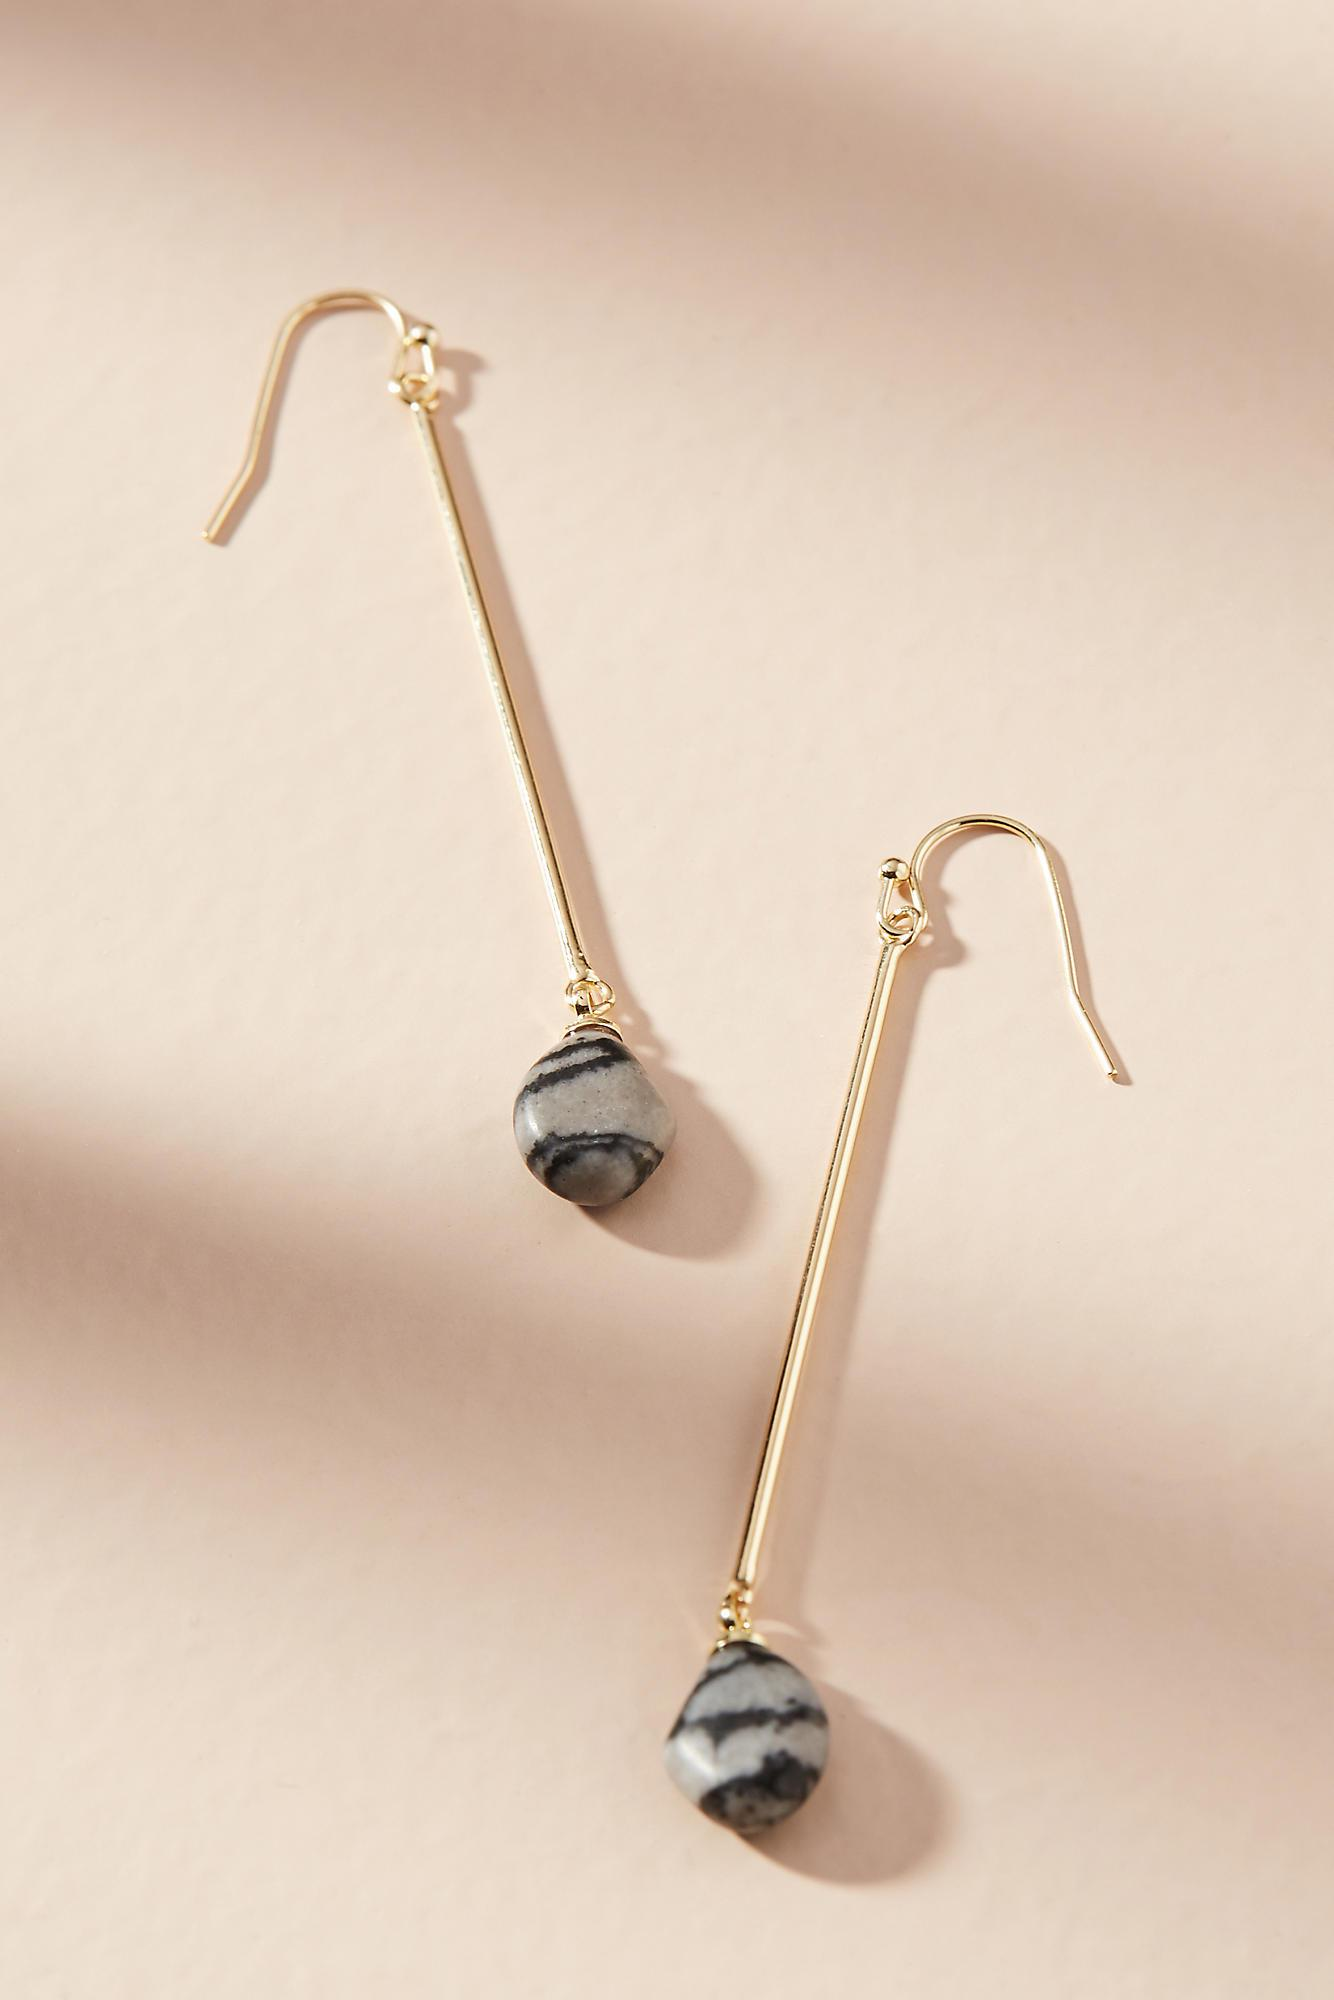 Anthropologie Tumbled Stone Drop Earrings